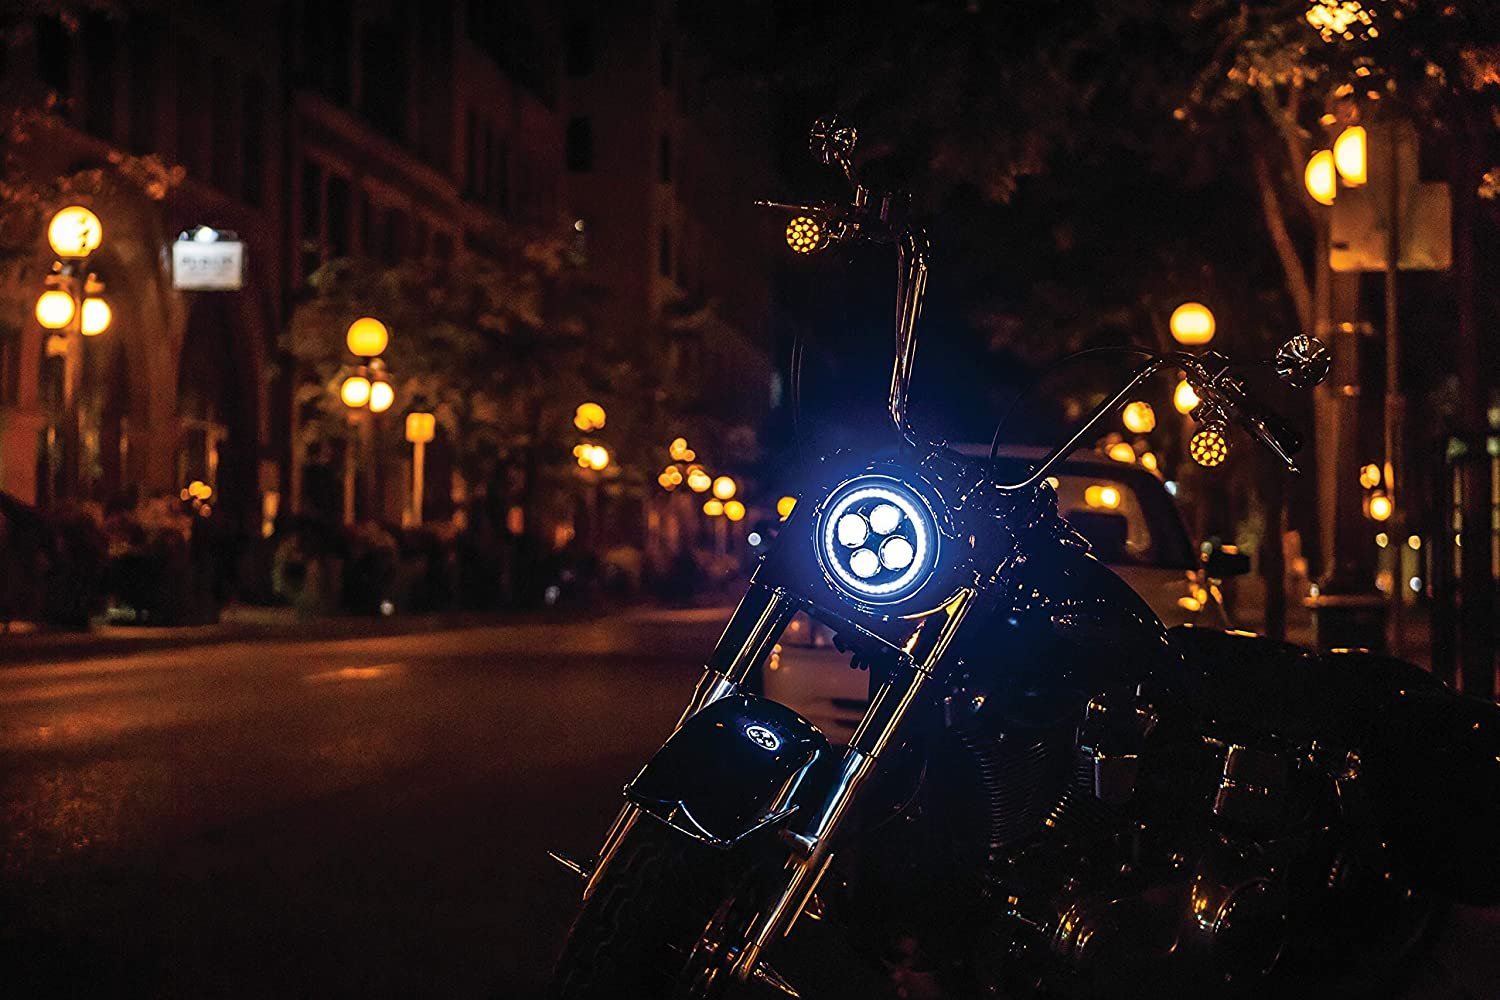 1 Pair Black Kuryakyn 2466 Motorcycle Lighting Accessory: 4-1//2 Orbit Vision LED Passing Lamps with White Halo Rings for Harley-Davidson Indian Motorcycles